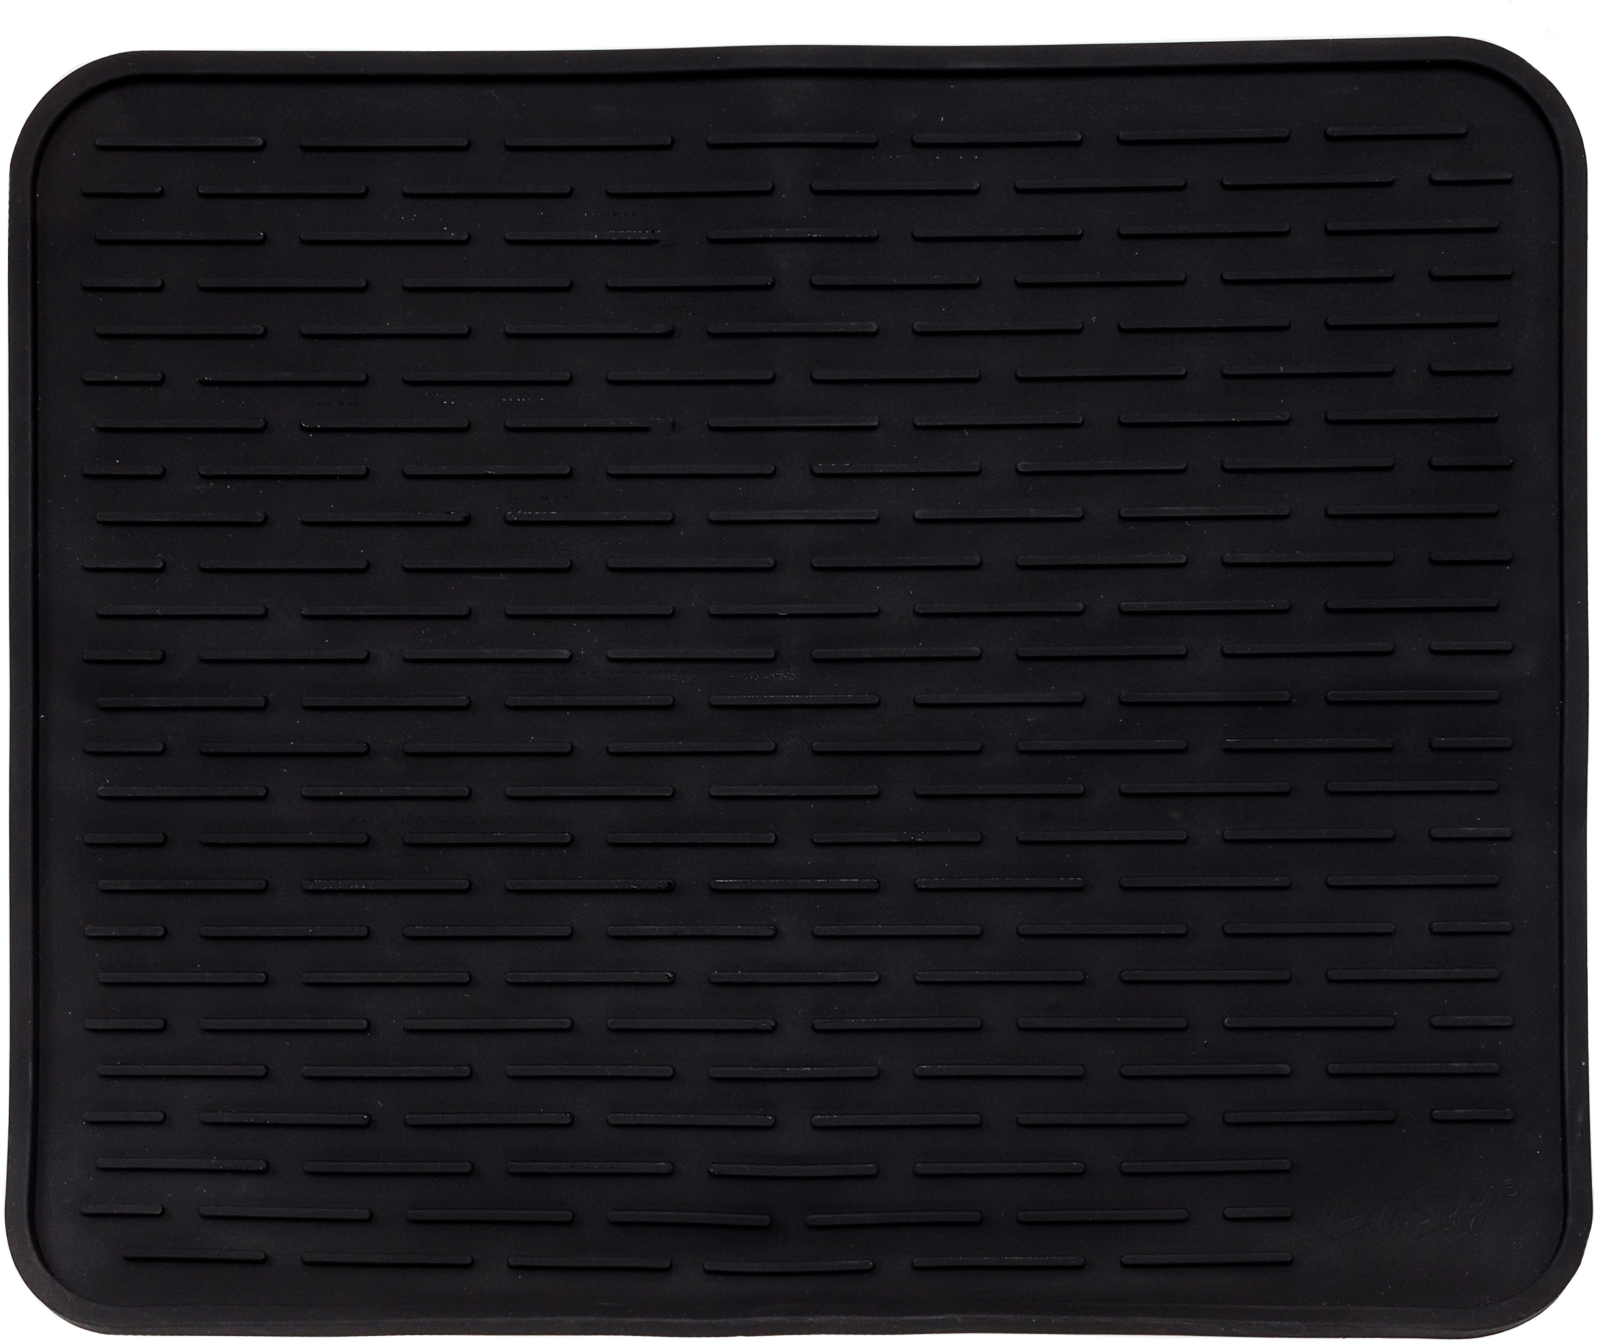 gas duty accessories bpa heat electric grill mats to baking grills set and heavy as for easy clean resistant of charcoal non bbq stick oven outdoor reusable liner smoker mat free pid